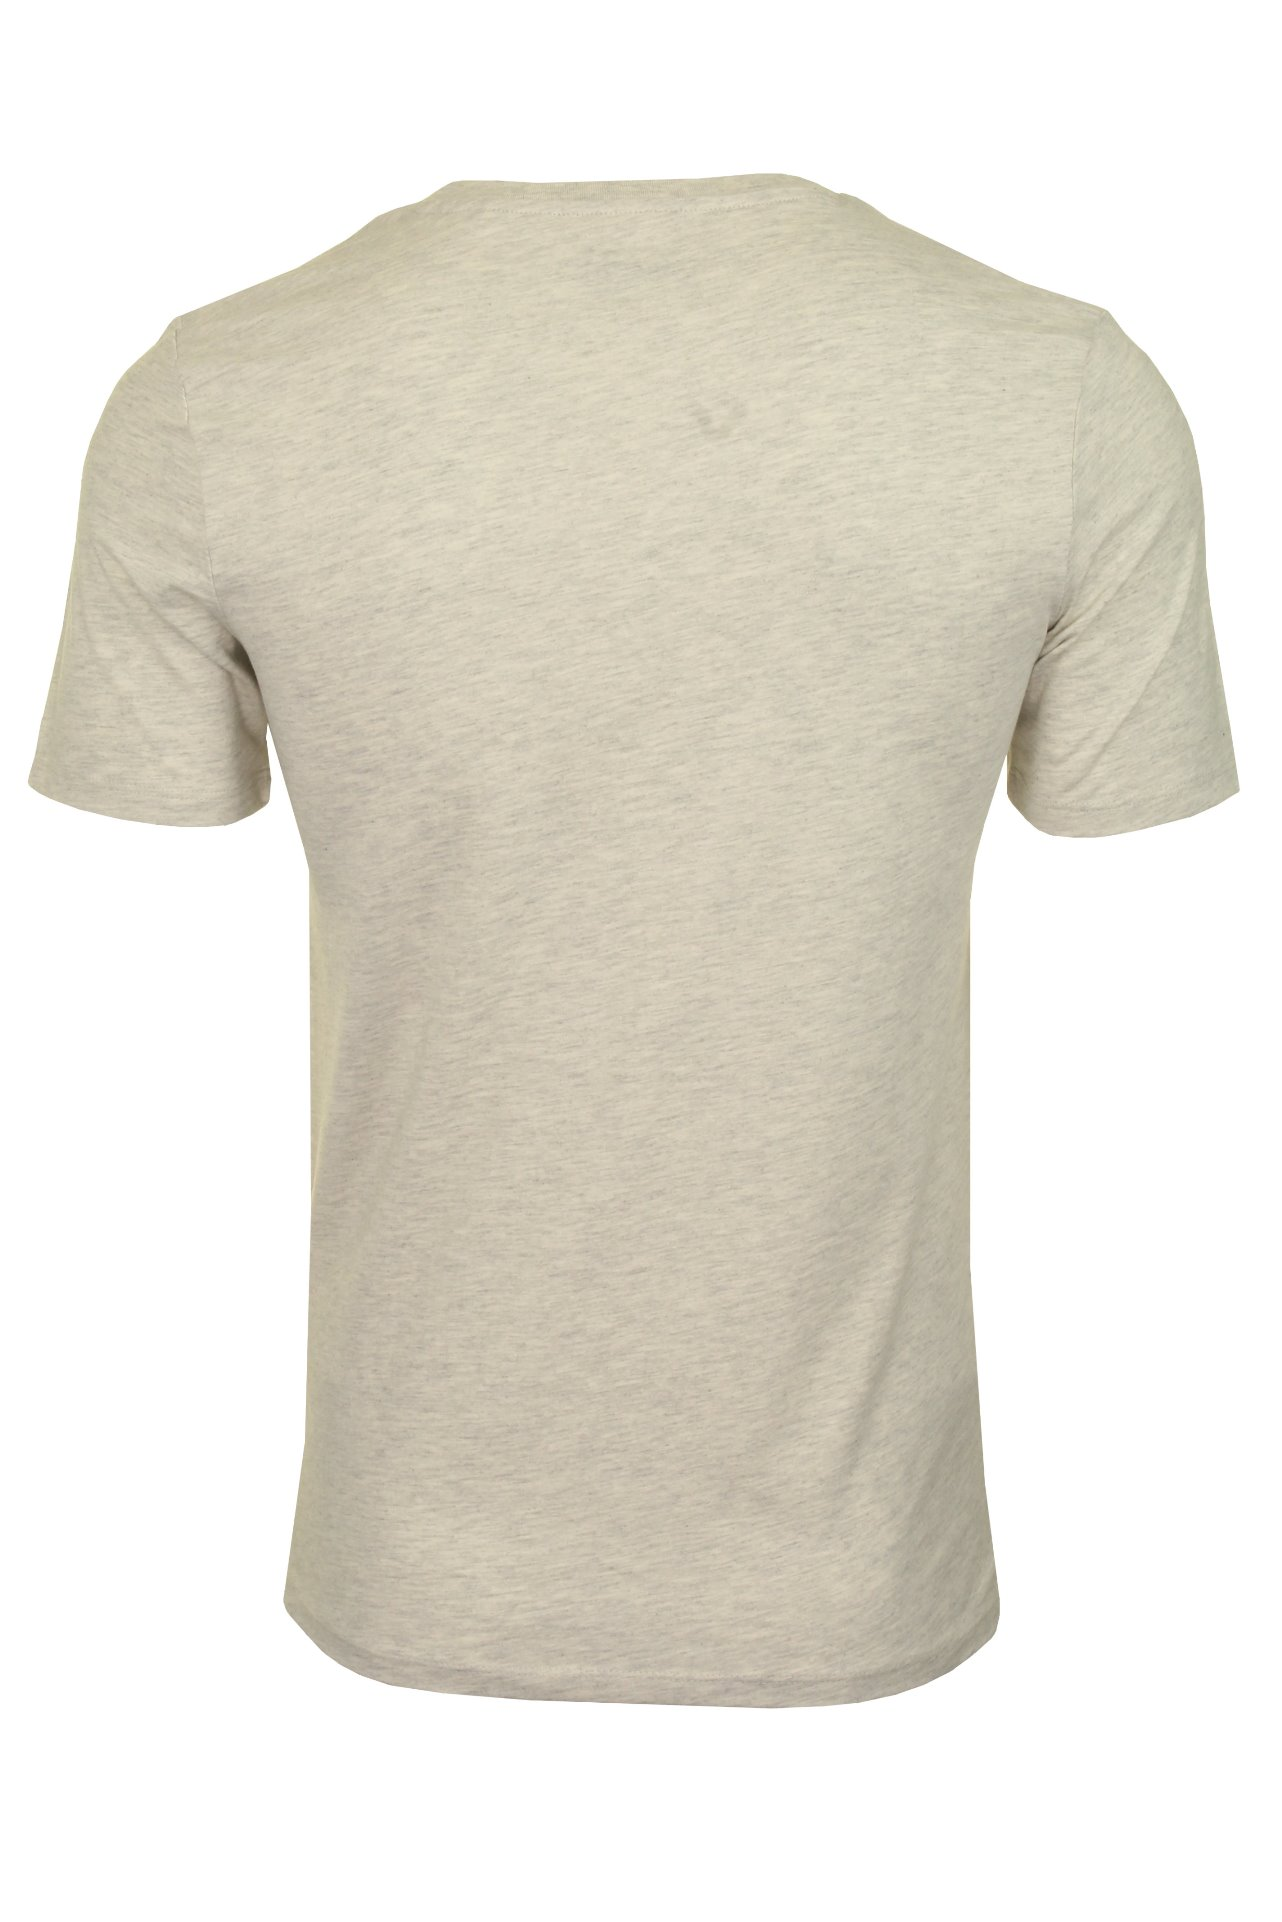 Jack-amp-Jones-Mens-039-JJE-Logo-Tee-039-T-Shirt thumbnail 14